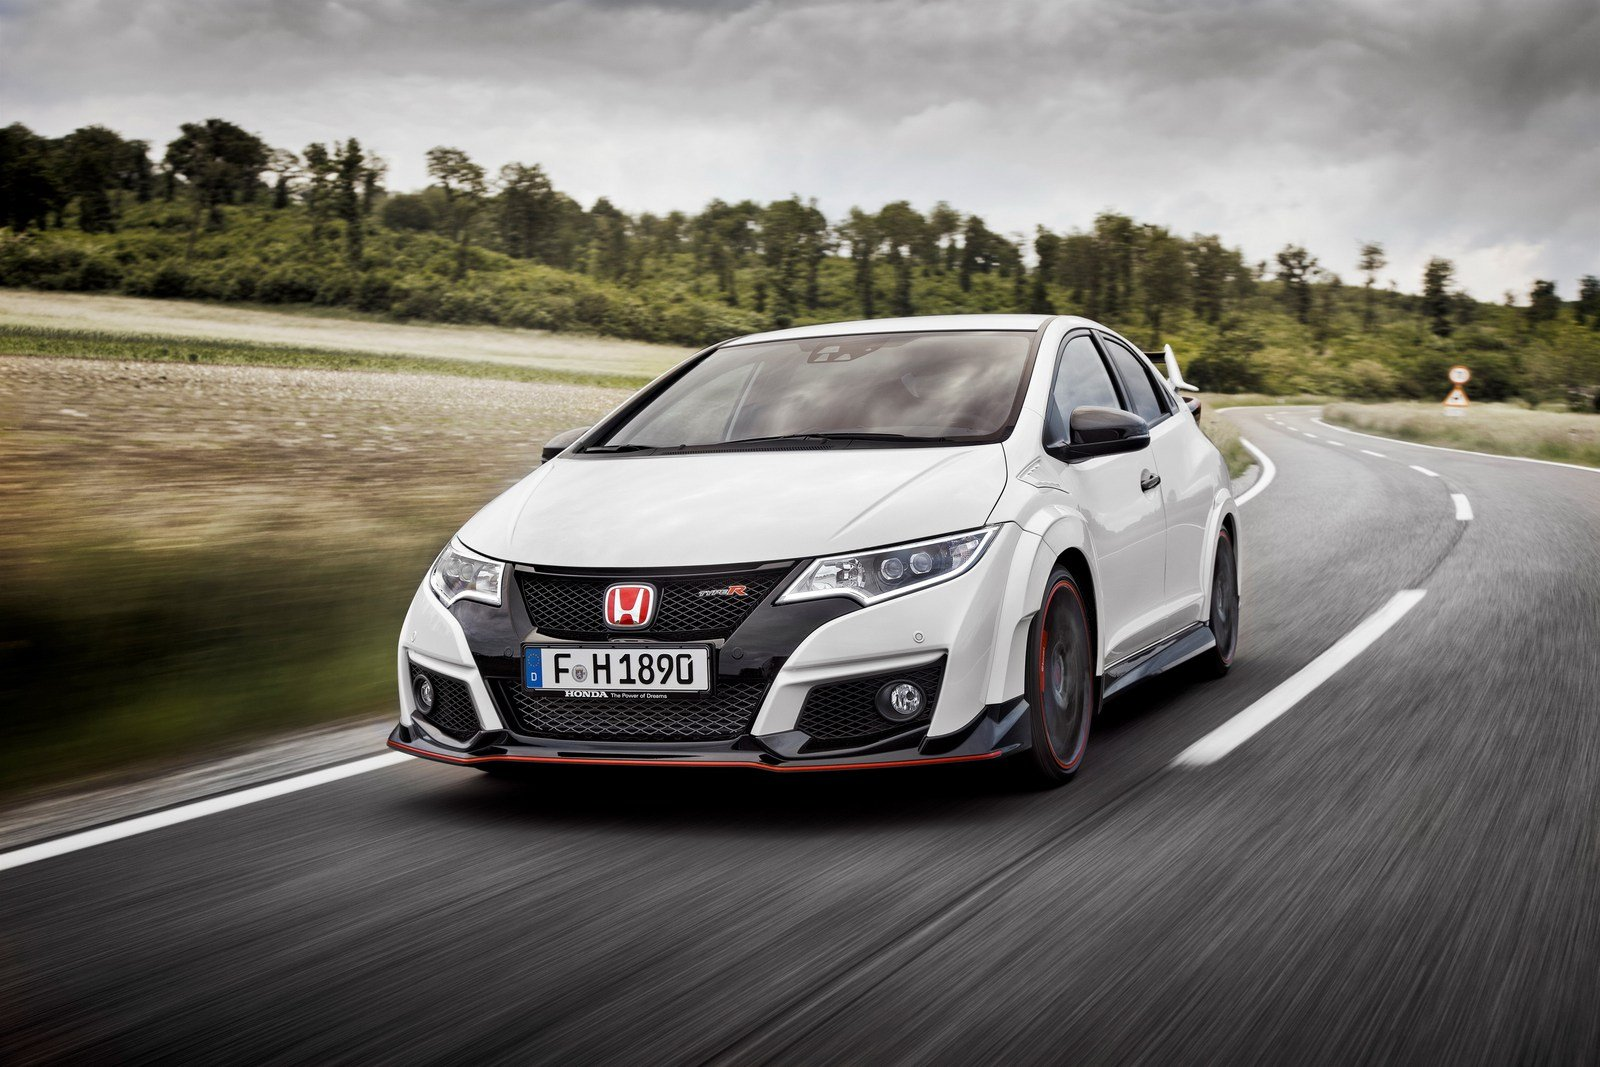 2016 honda civic type r picture 632262 car review top speed. Black Bedroom Furniture Sets. Home Design Ideas